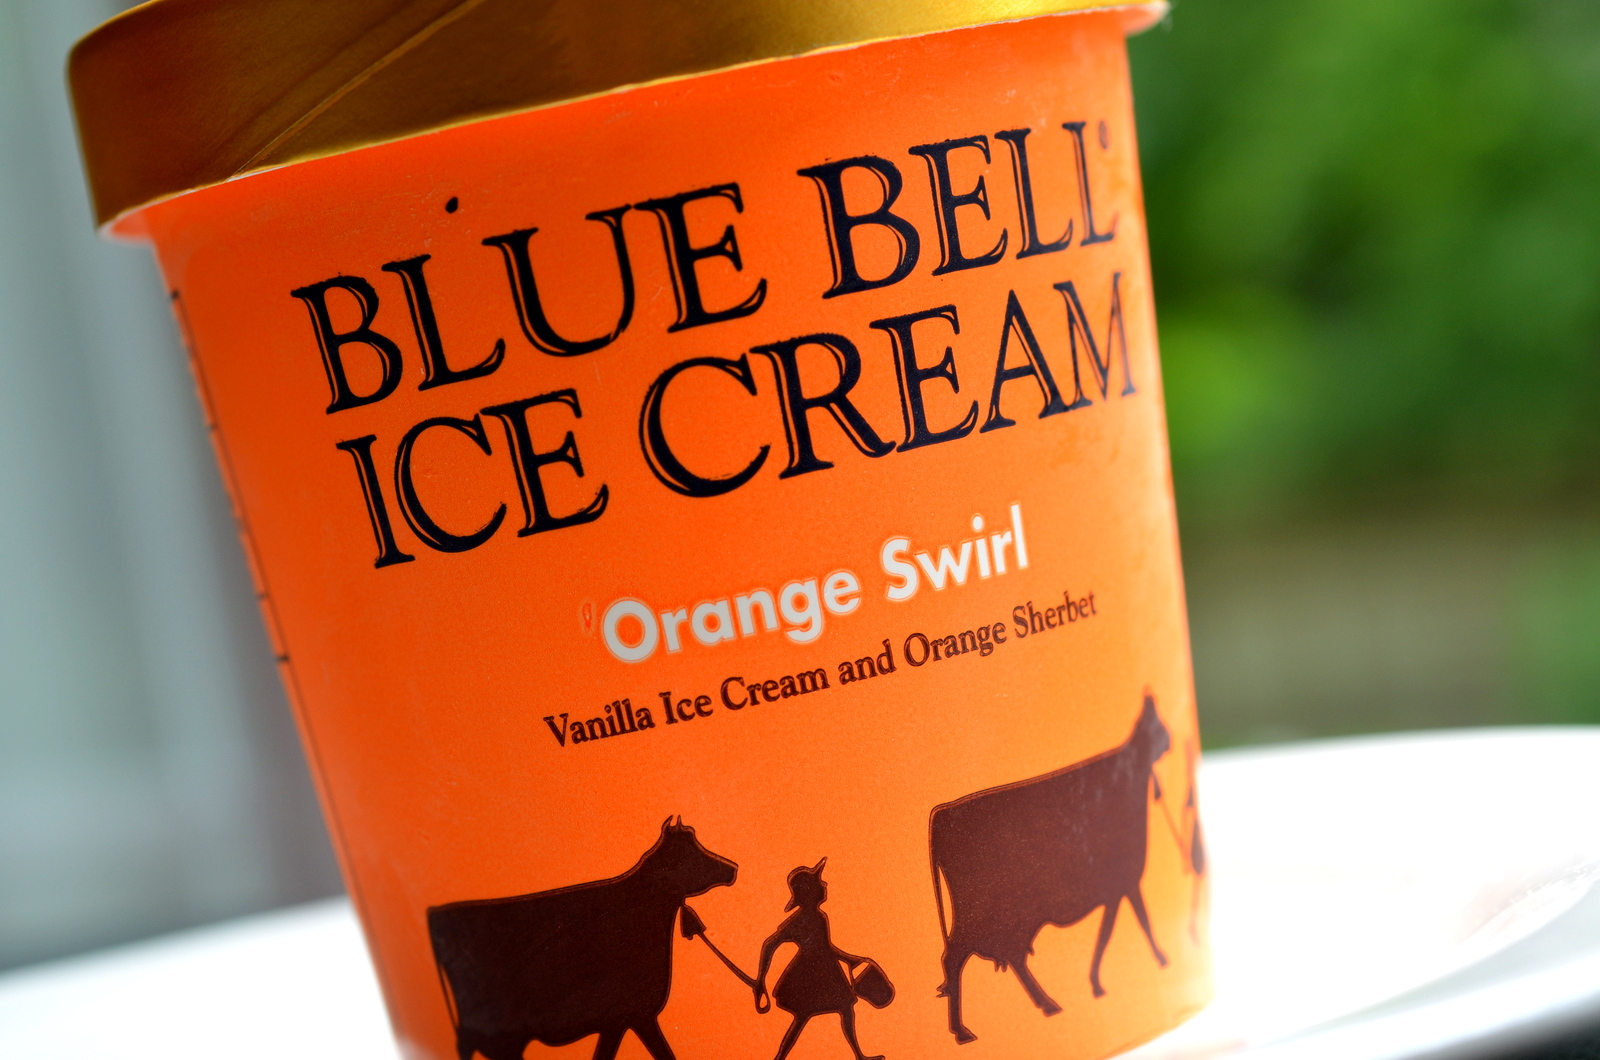 food and ice cream recipes REVIEW Blue Bell Orange Swirl